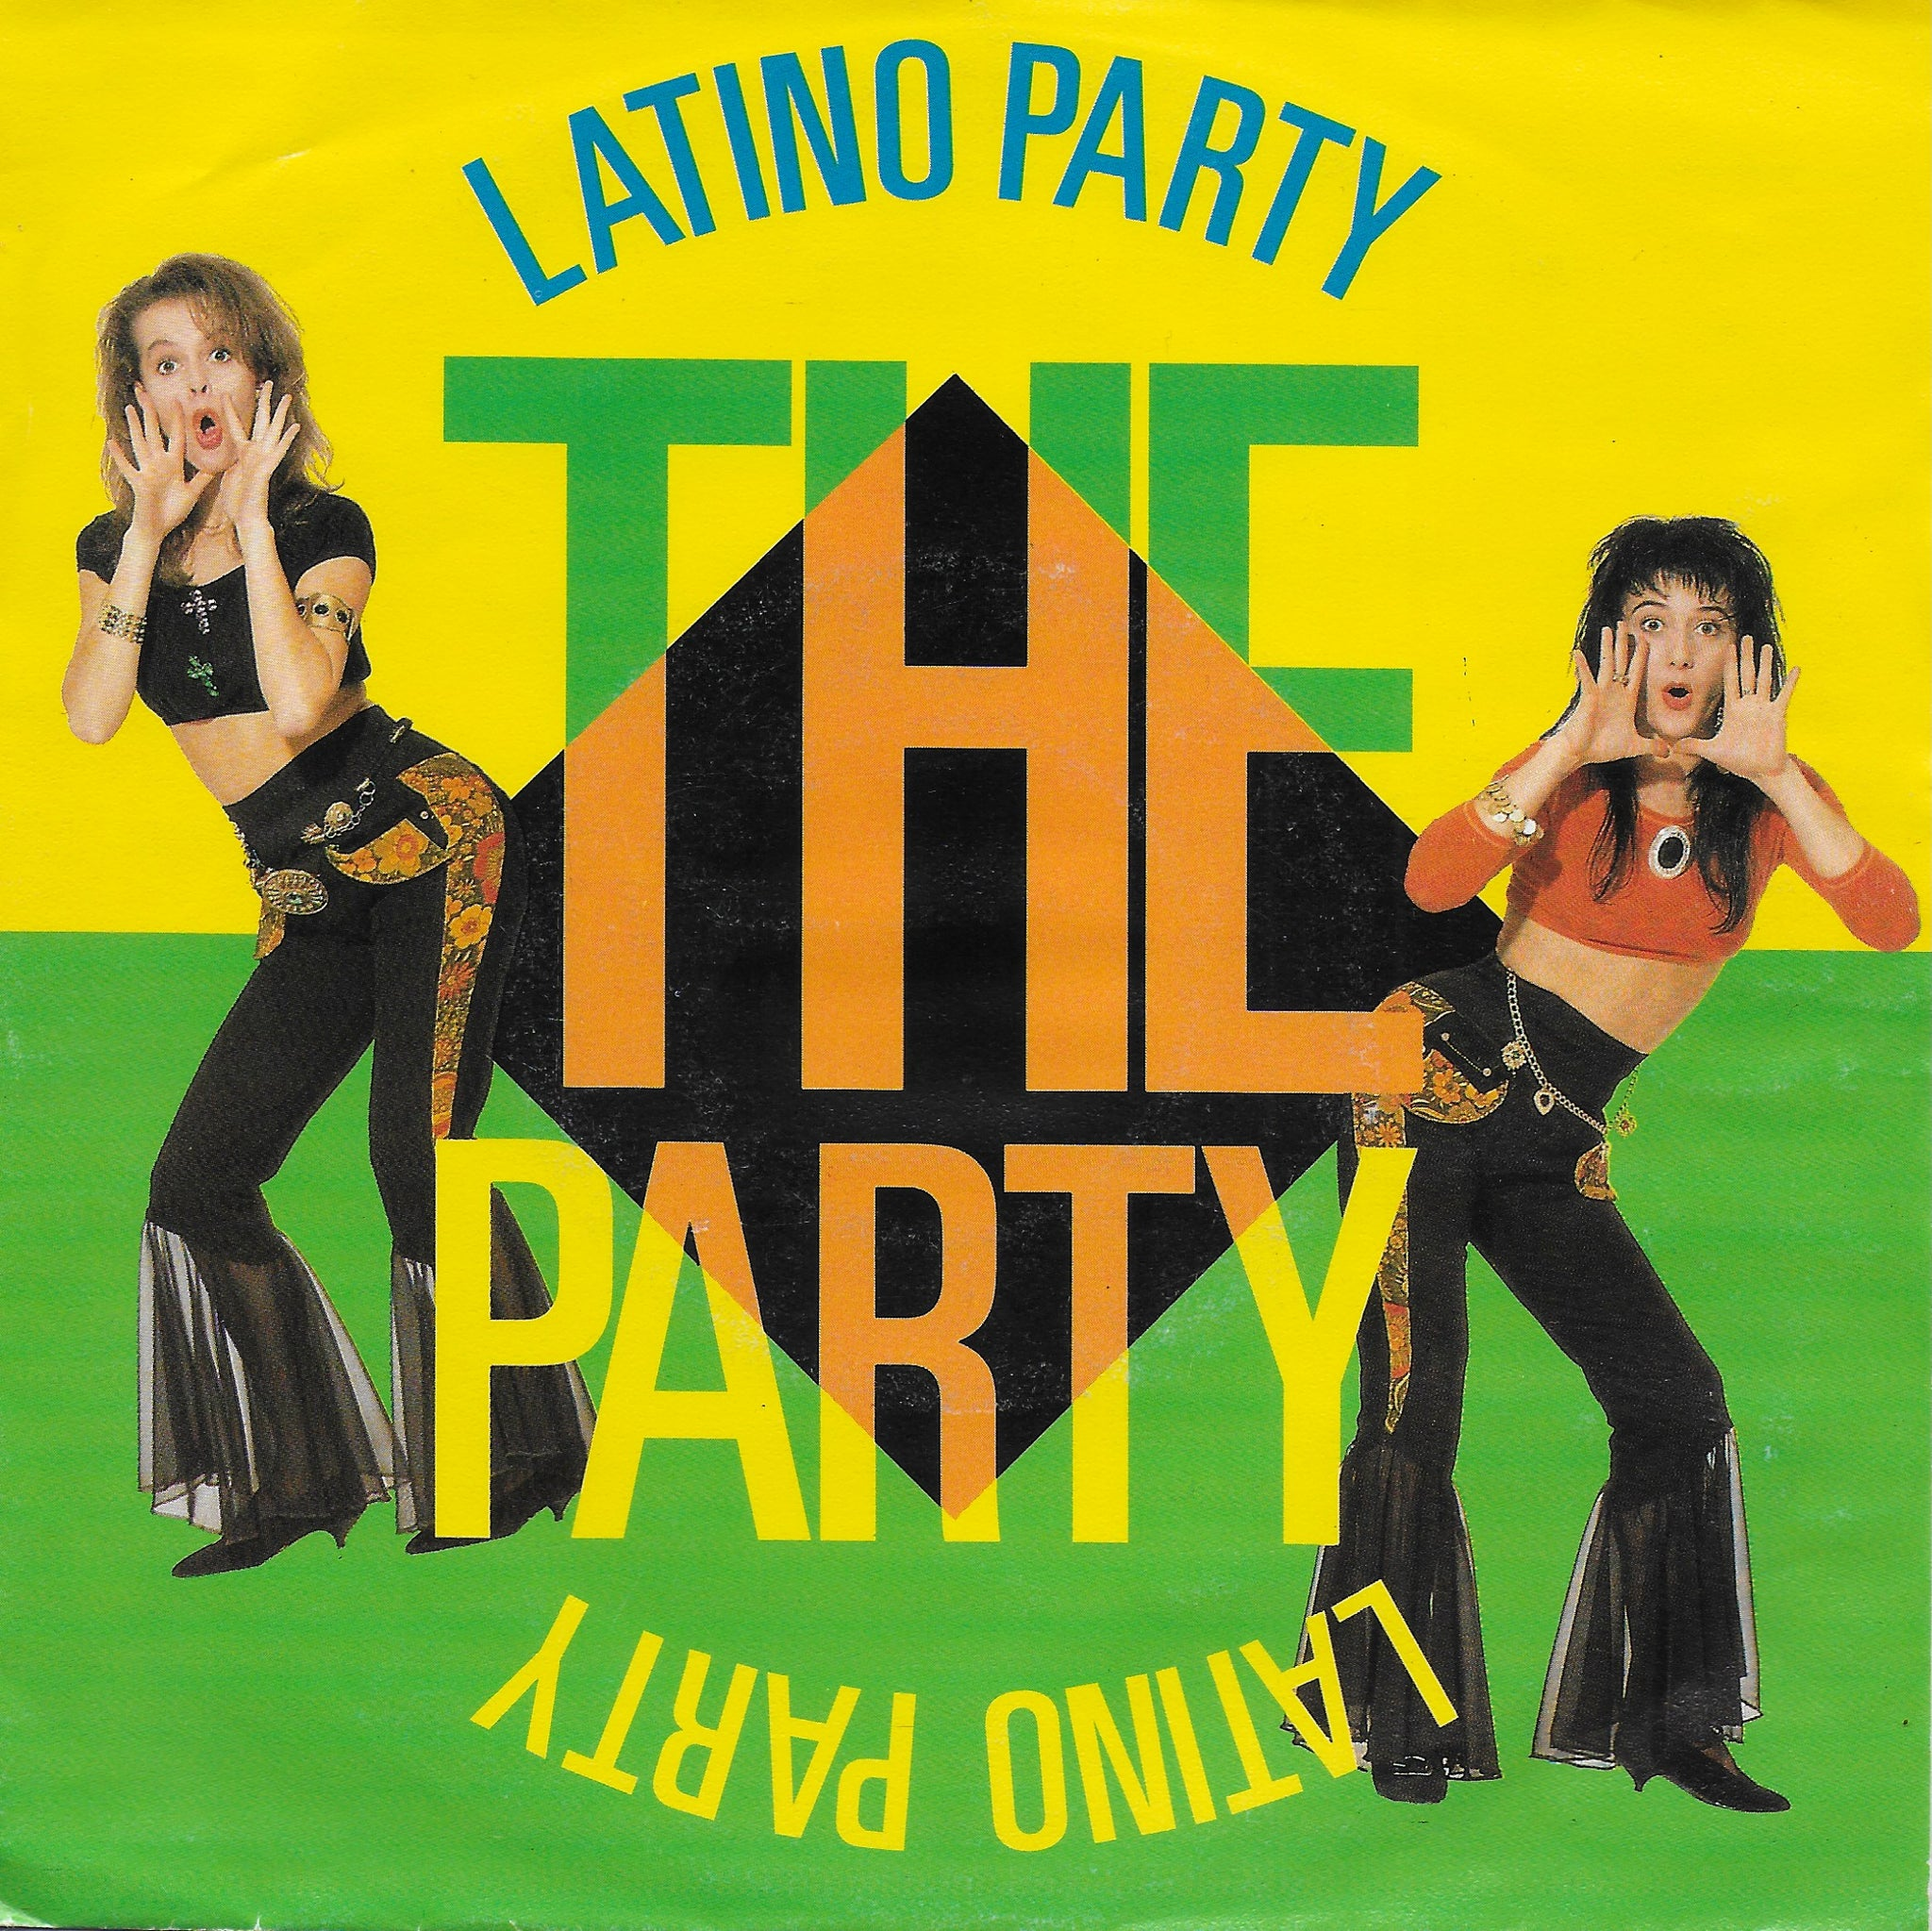 Latino Party - The party